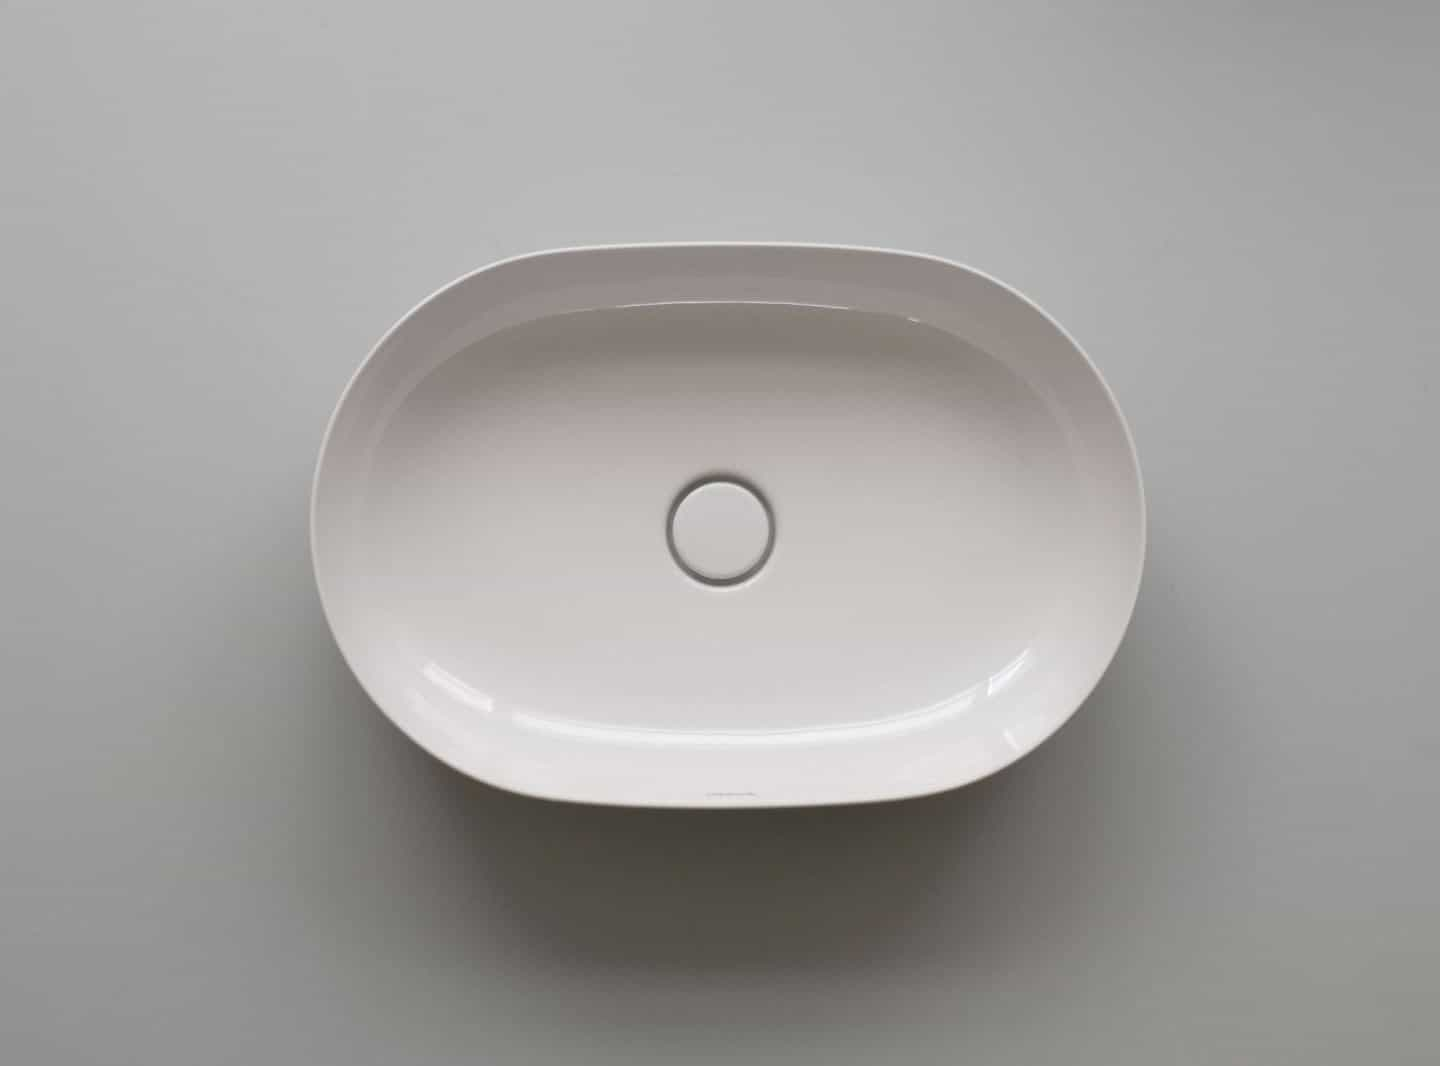 Ariel image of the basin from The Luv collection by luxury bathroom brand Duravit.